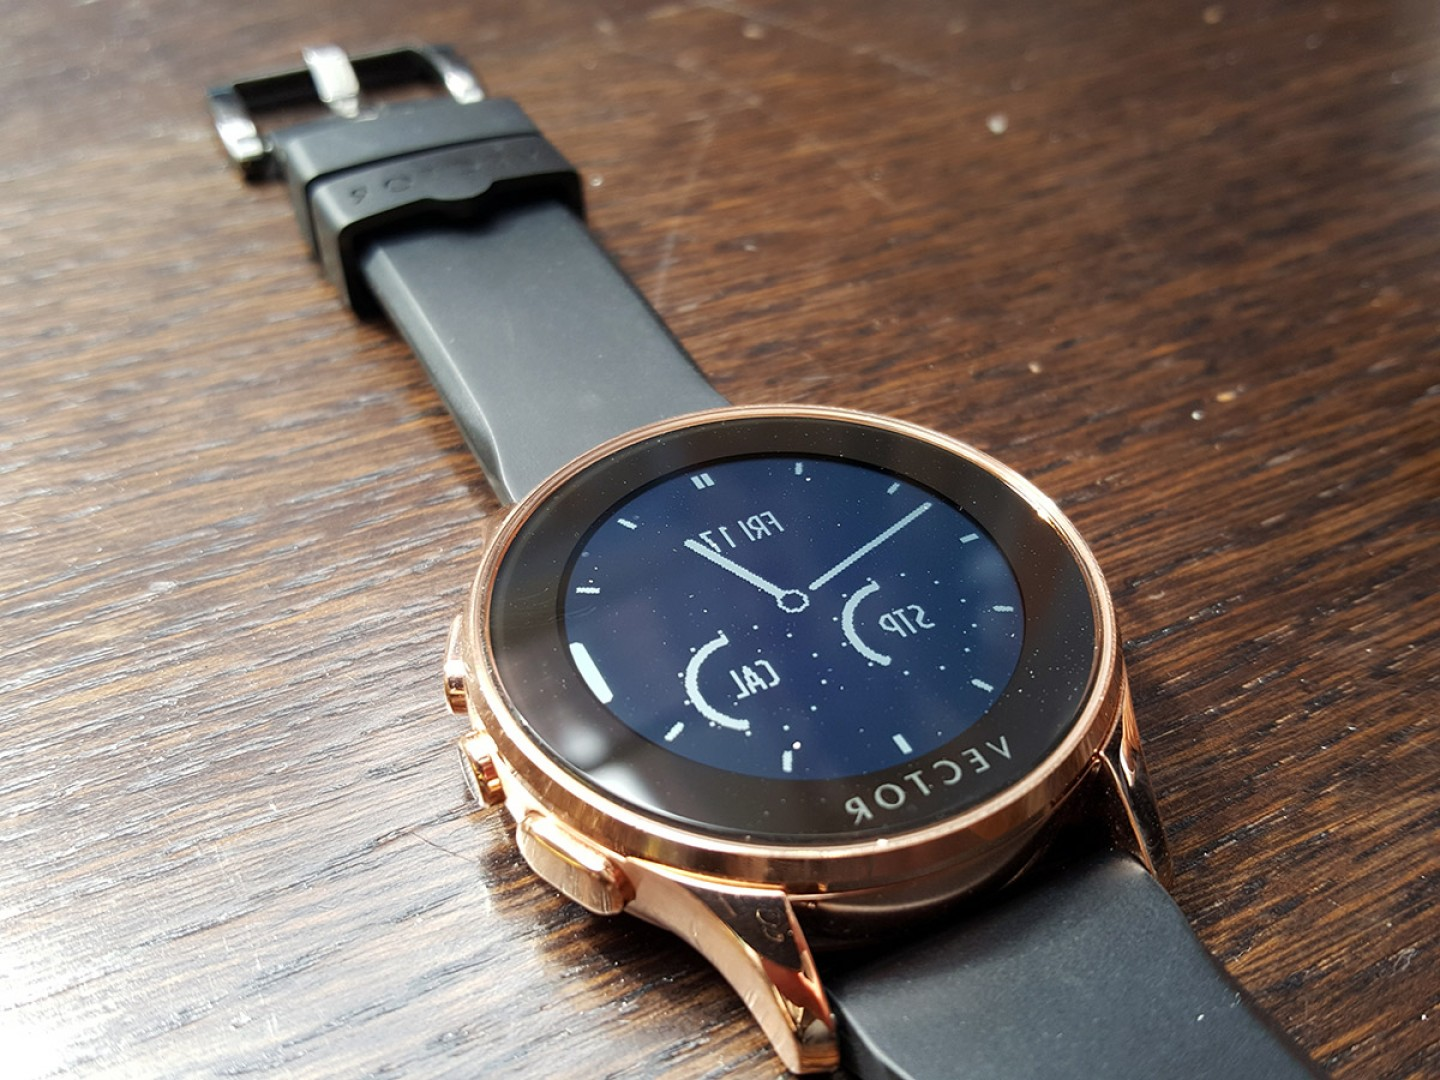 Watch Face Vector: Vector Plans Developer Platform For Its Affordable Luxury Smart Watch